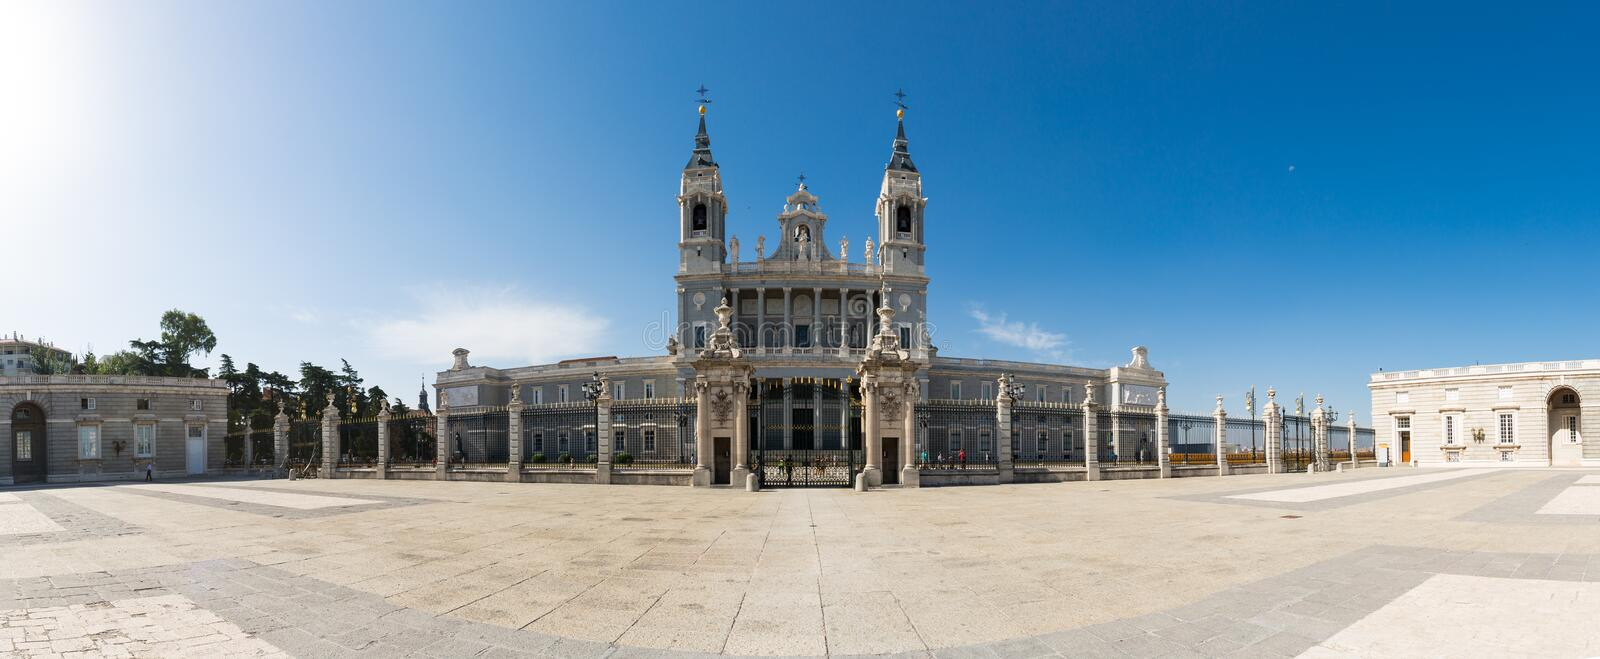 Almudena Cathedral - External view. The Almudena Cathedral is the cathedral of Madrid, Spain, and is a modern building concluded in 1993. It is one of the royalty free stock photo